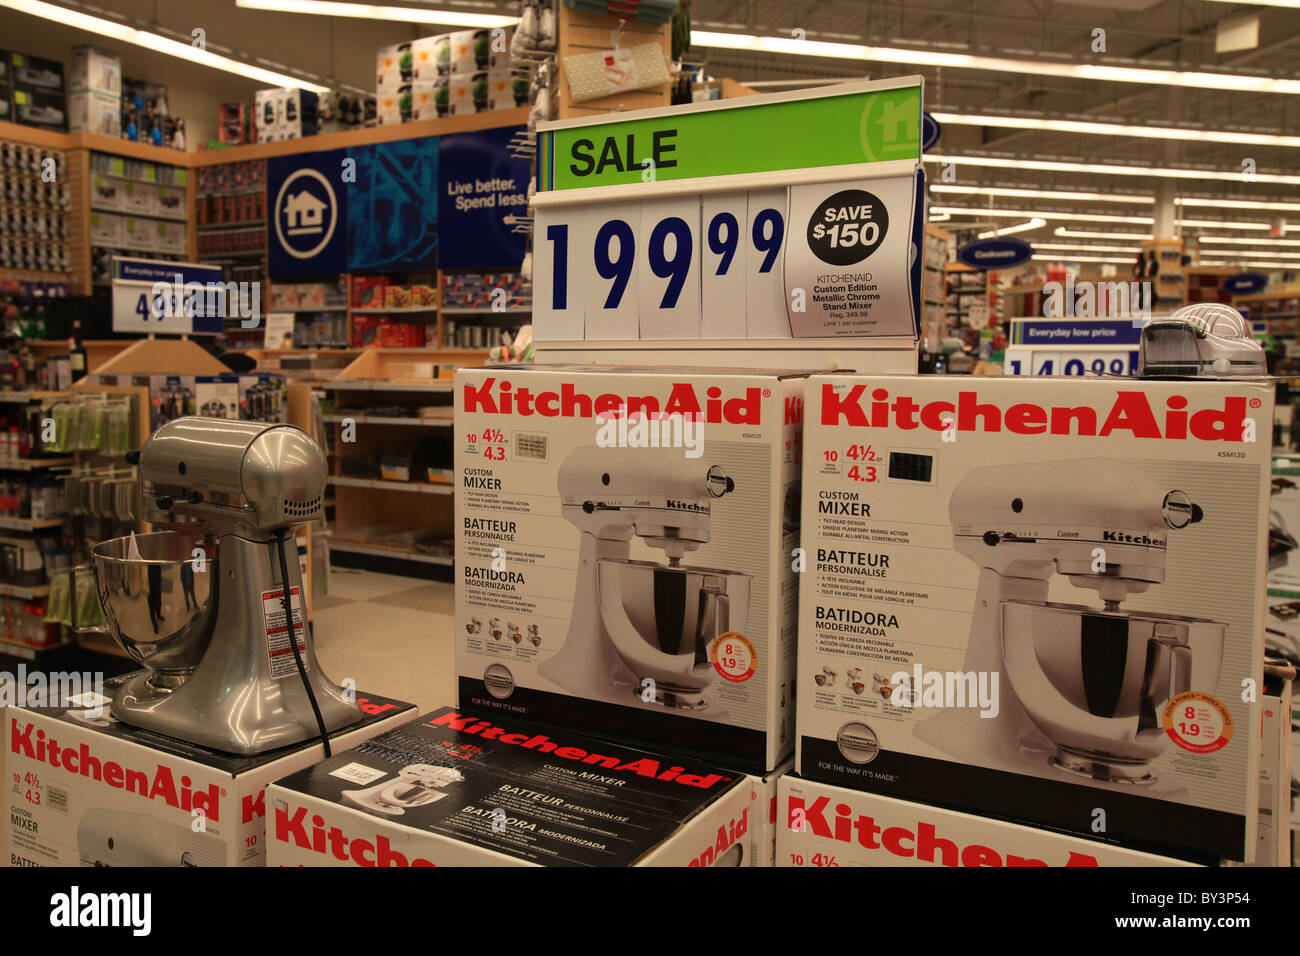 KitchenAid Home outfitters outlet store in Vaughan Mills Mall in Toronto, Canada 2010 - Stock Image